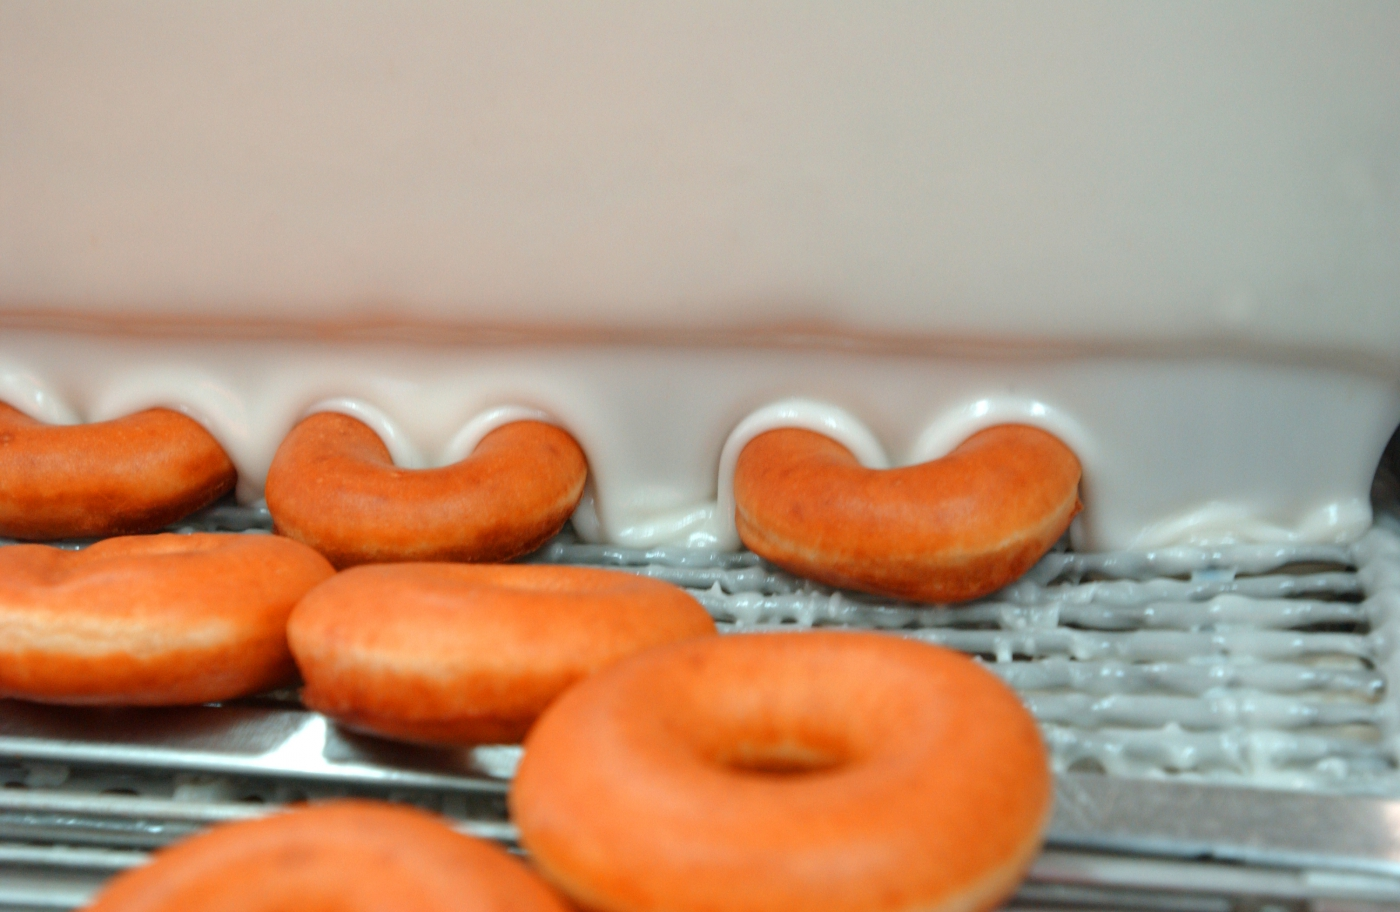 Krispy Kreme Doughnuts are just one of many famous foods born in North Carolina.